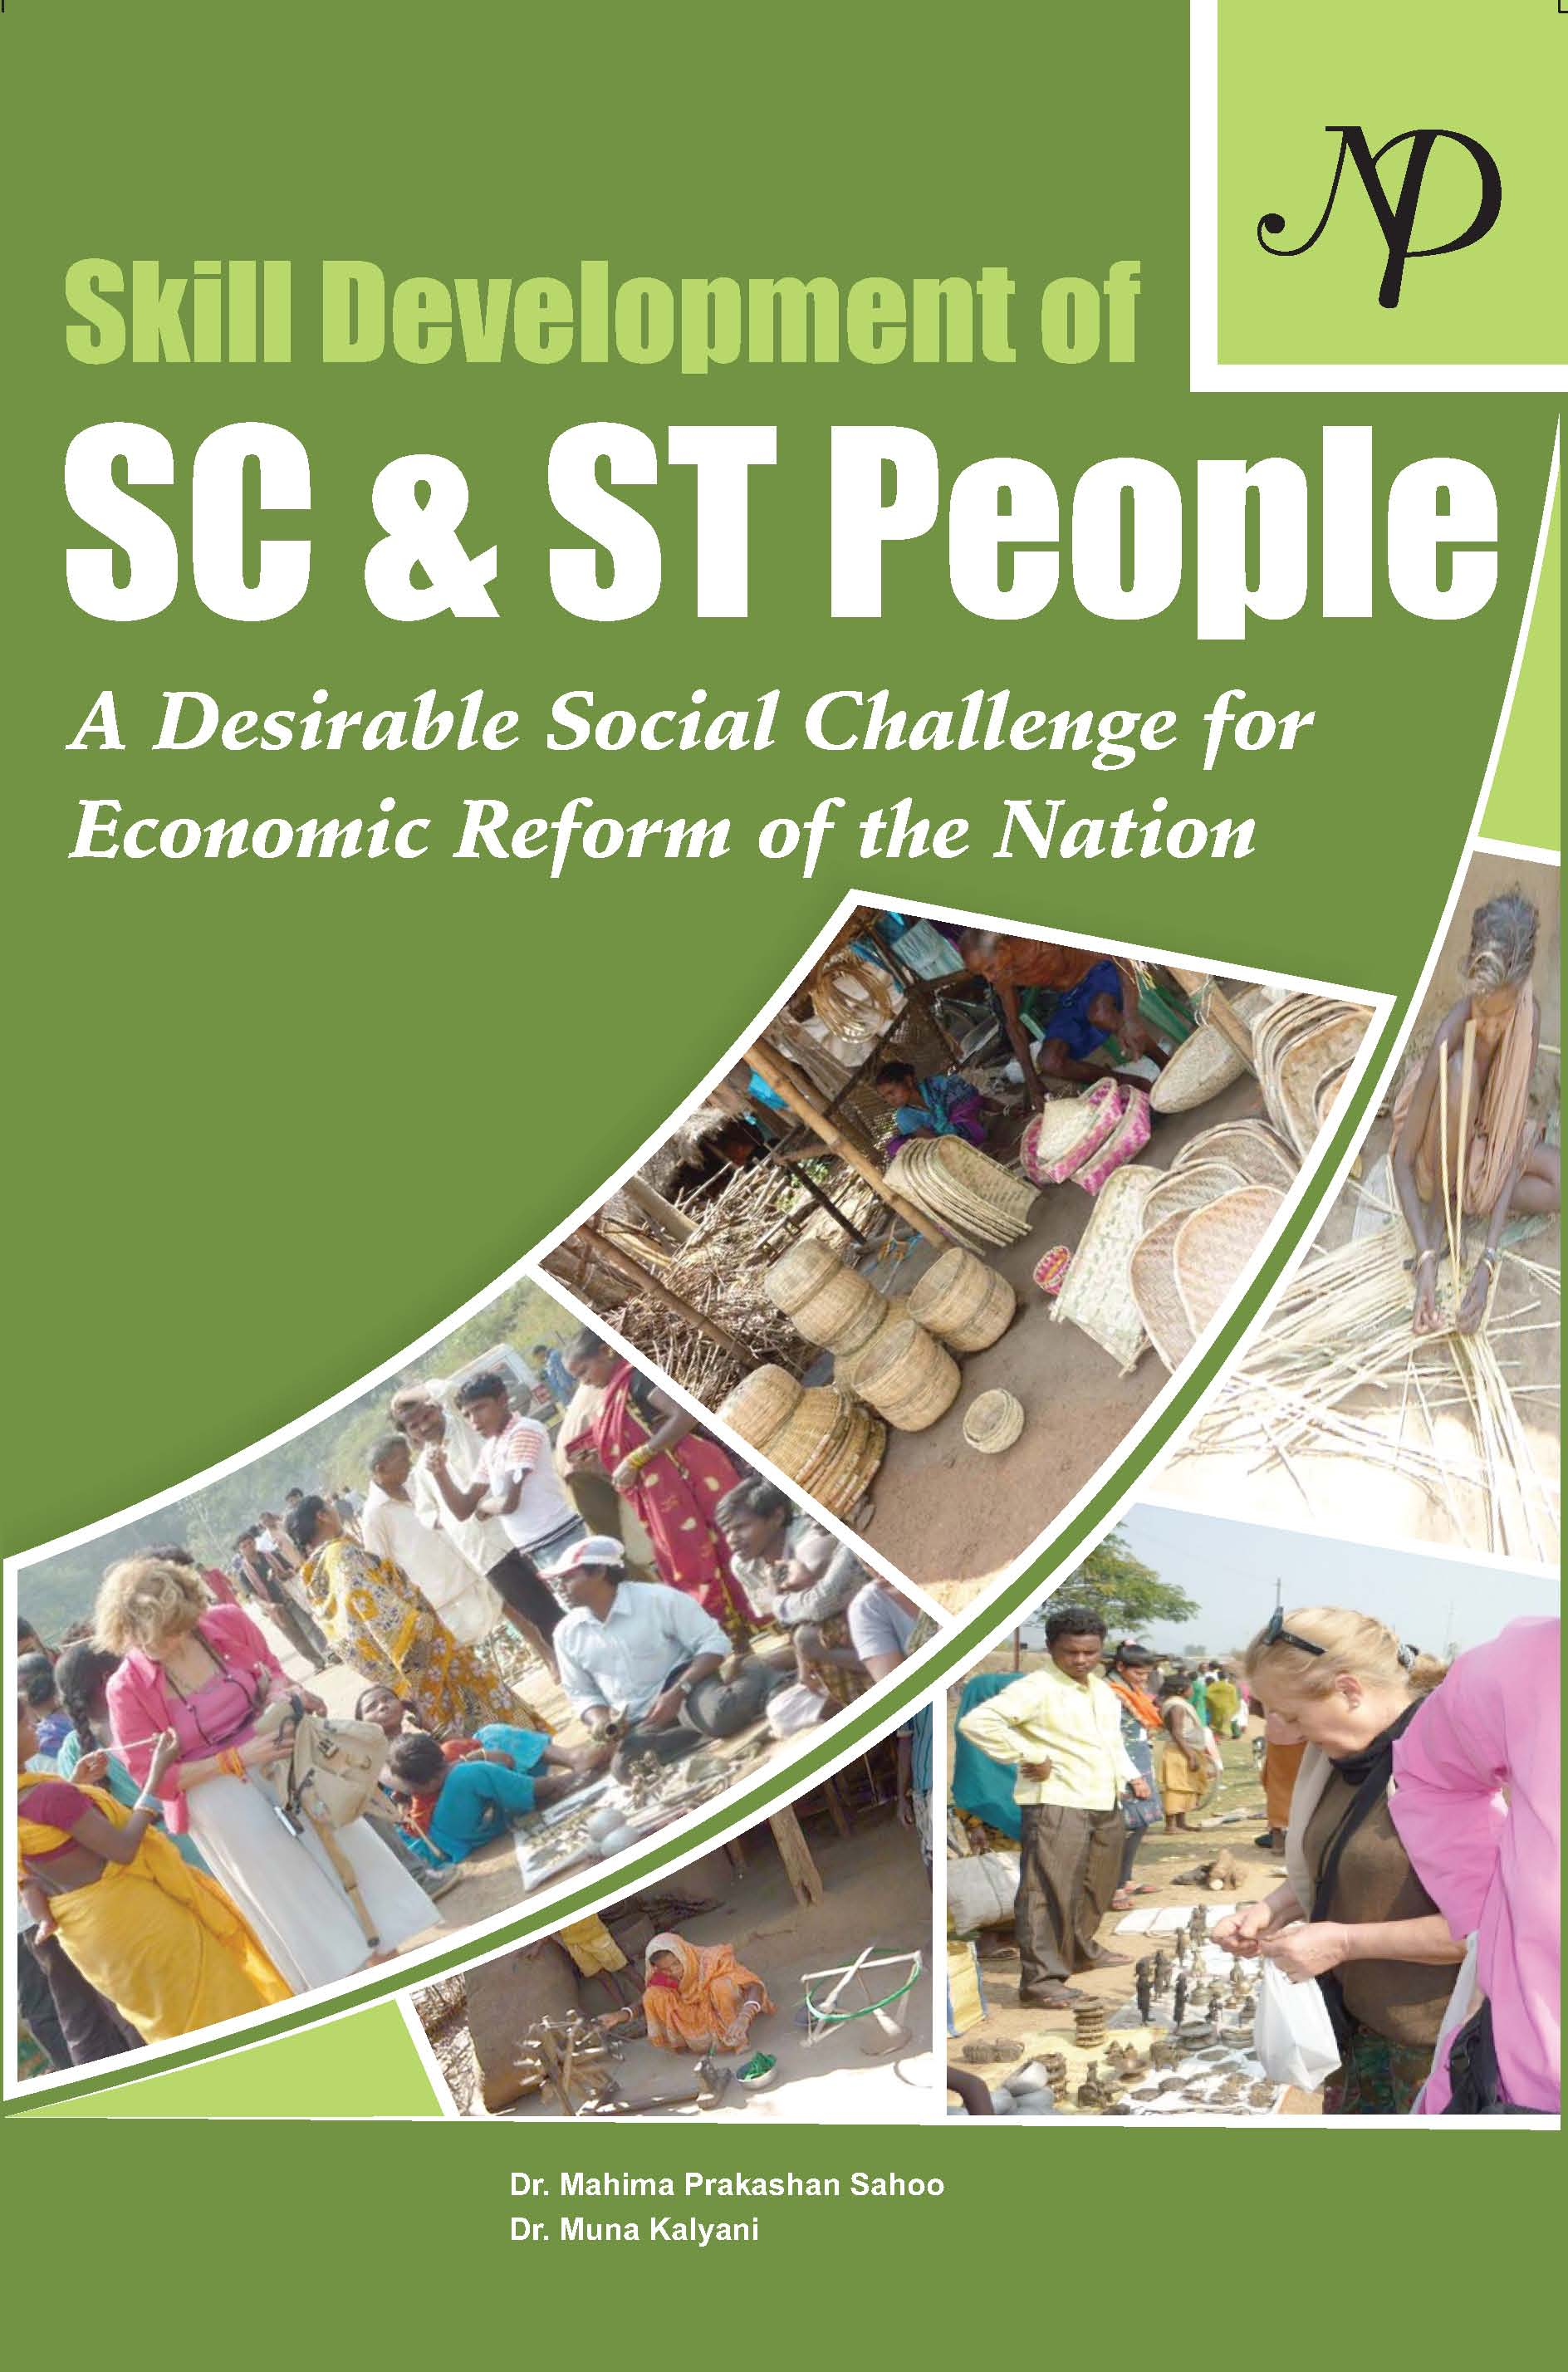 Skill Development of SC & ST People A Desirable Social Challenge for Economic Reform of the Nation.jpg